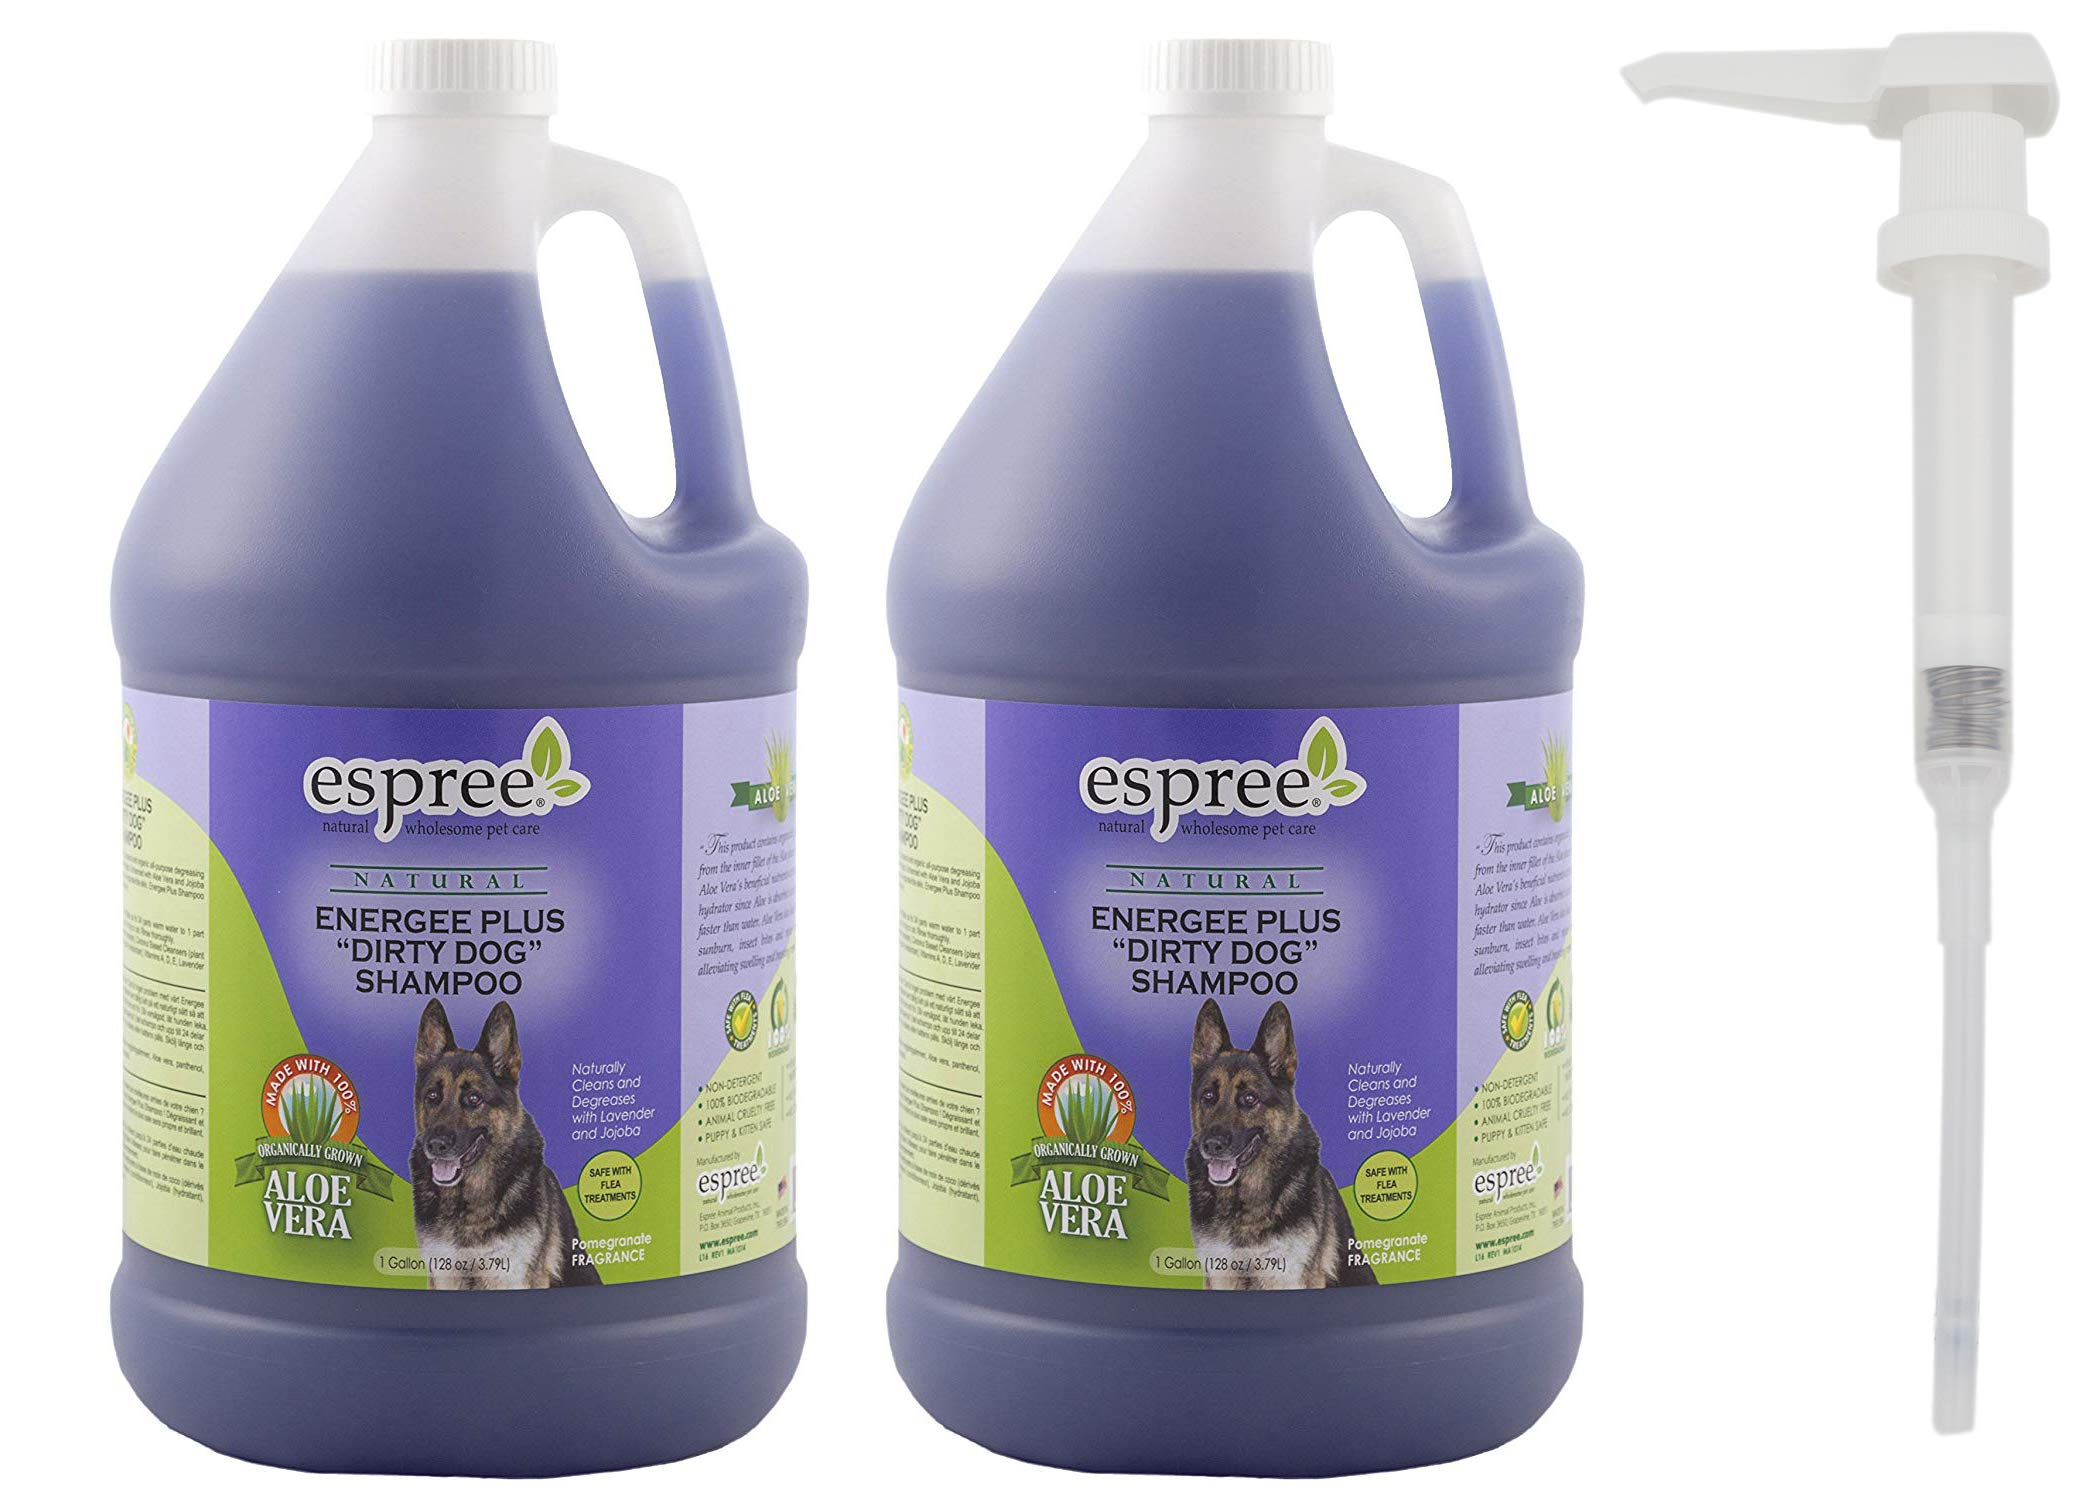 Espree Energee Plus Dirty Dog Shampoo, 1 Gallon, Pack of 2 with 1 Pump